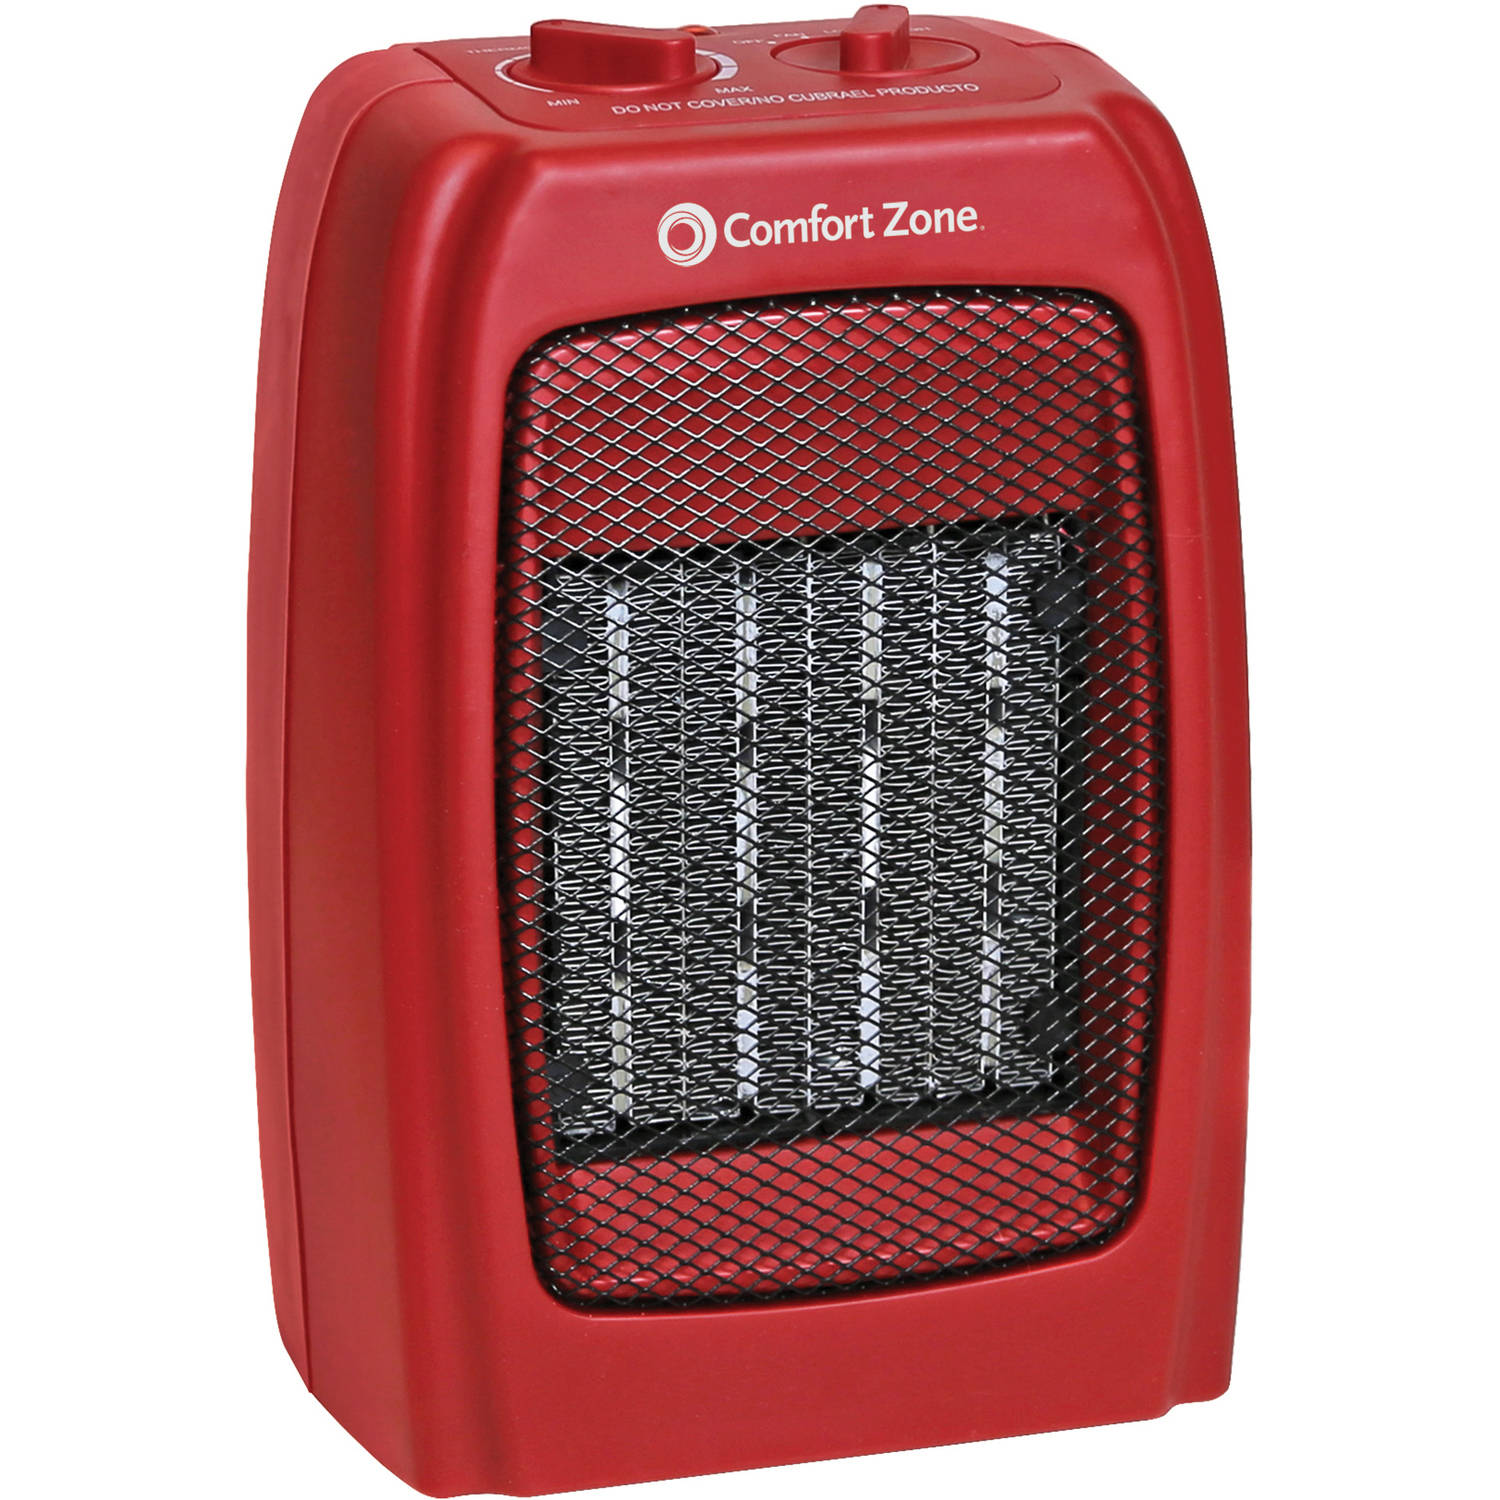 Comfort Zone Ceramic Heater, Red